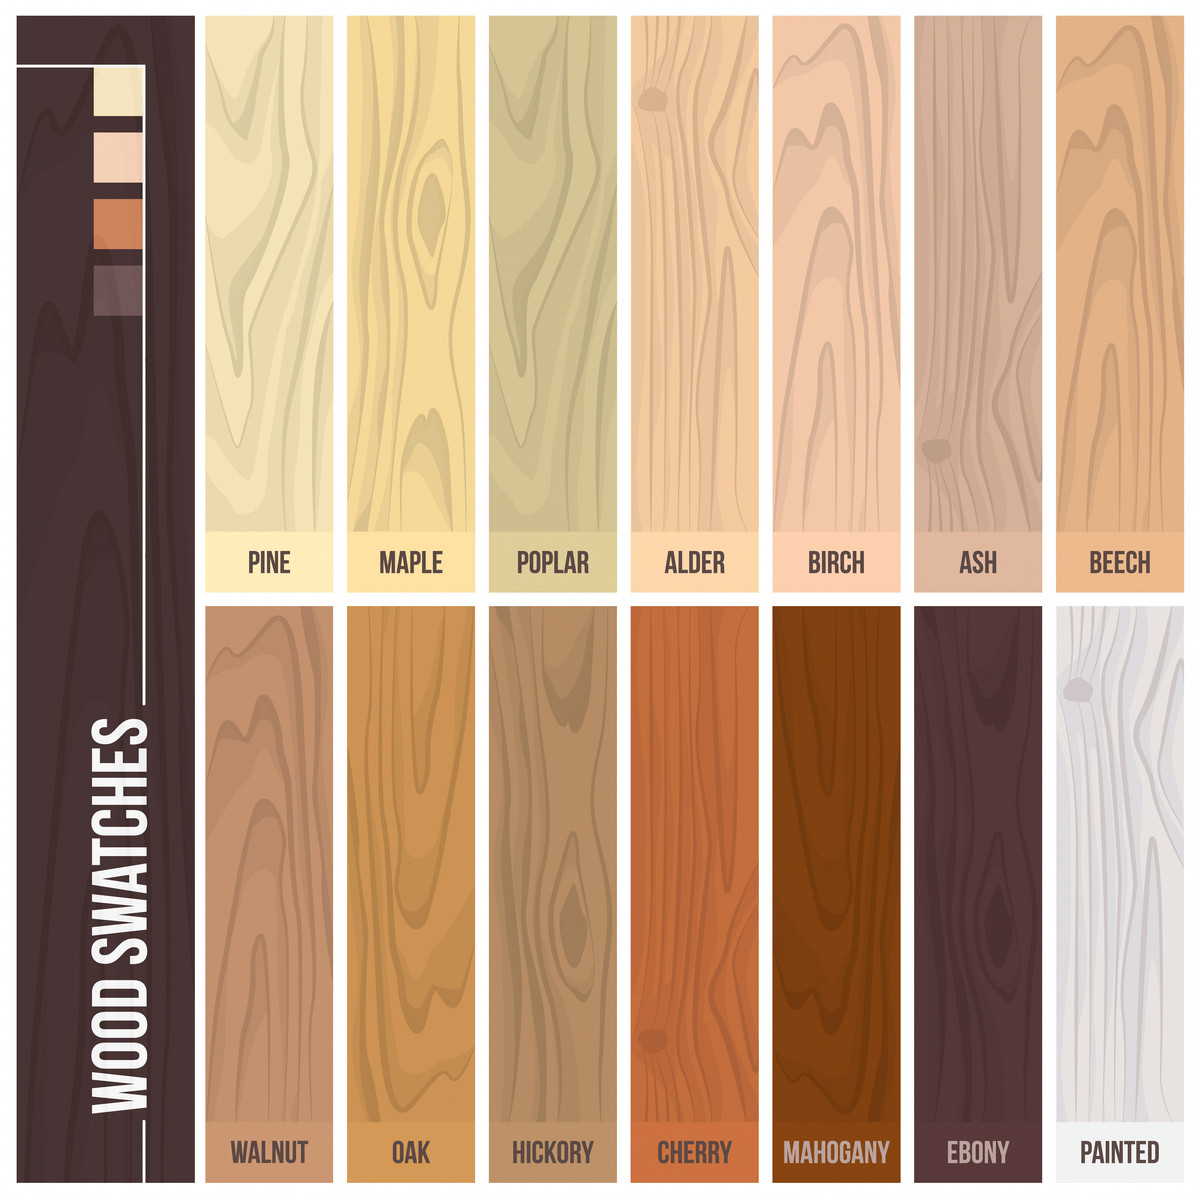 bruce prefinished hardwood flooring prices of 12 types of hardwood flooring species styles edging dimensions with regard to types of hardwood flooring illustrated guide